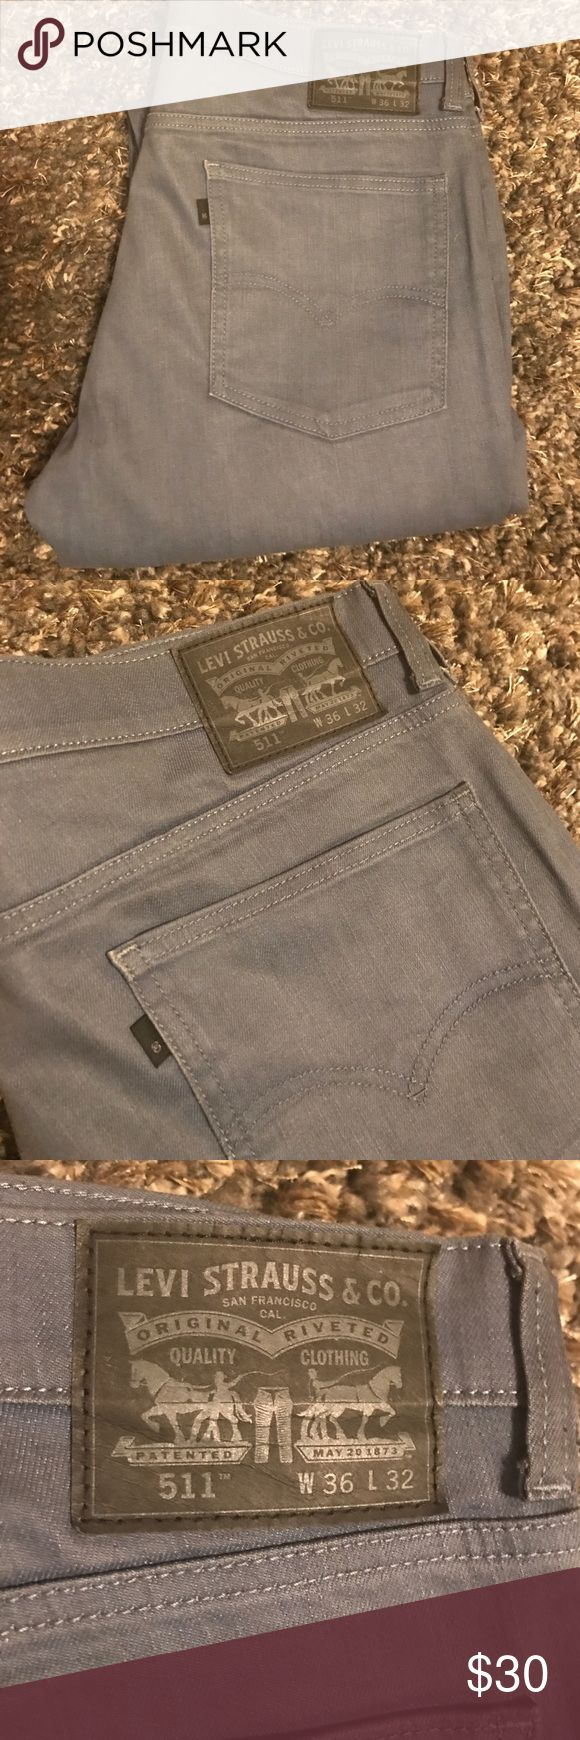 Levi's 511 Levi 511 W36 L32 Great Condition.. Perfect for everyday. Classic Jean 👖 Levi's Jeans Slim